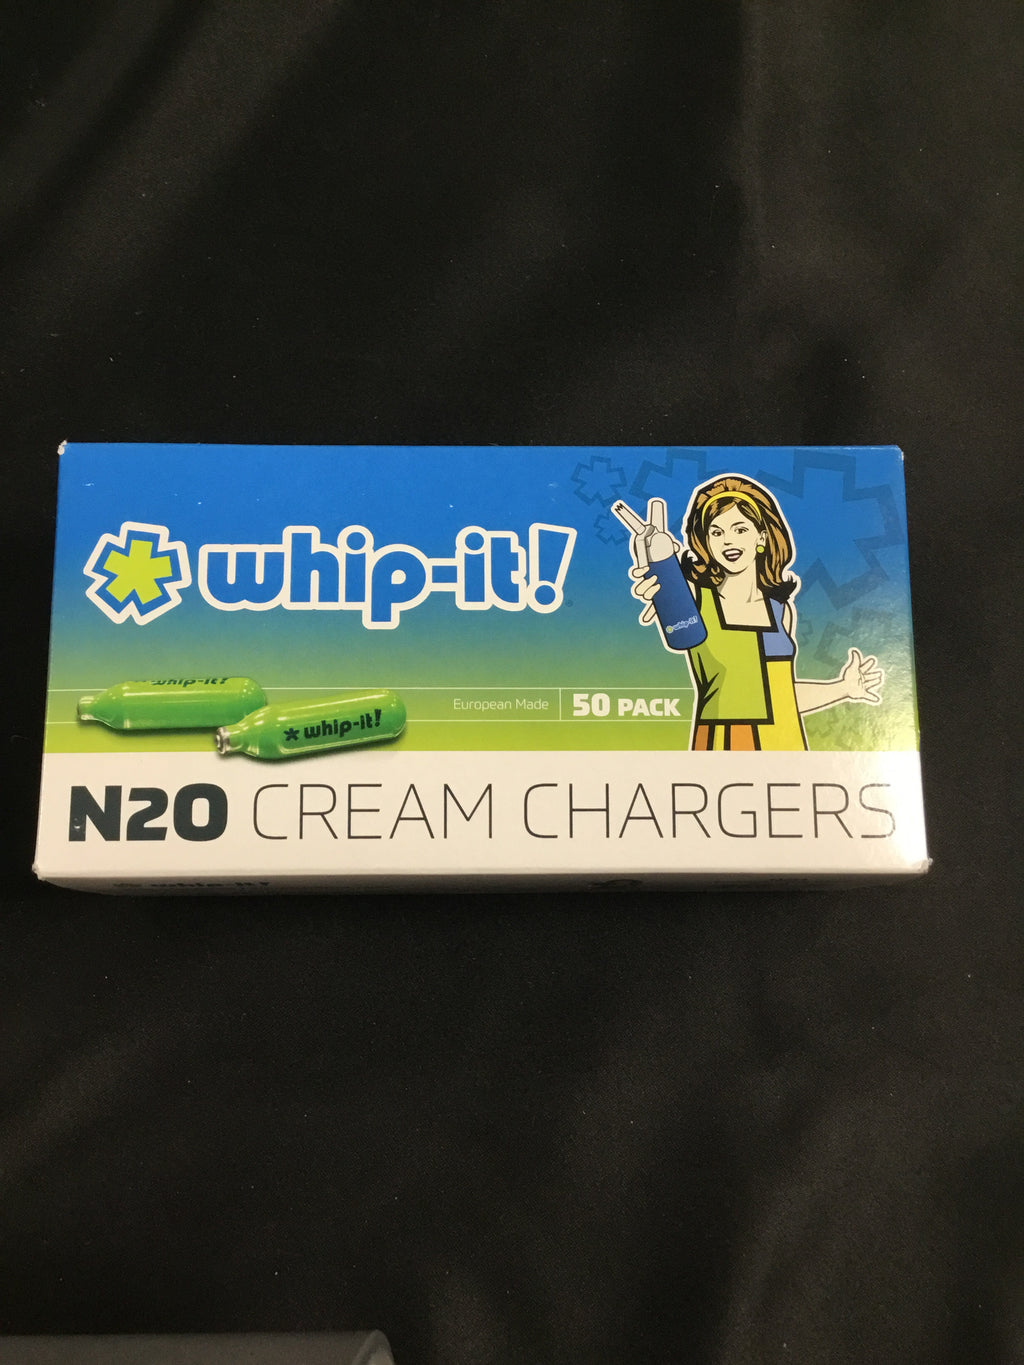 Whip-It N20 Cream Chargers